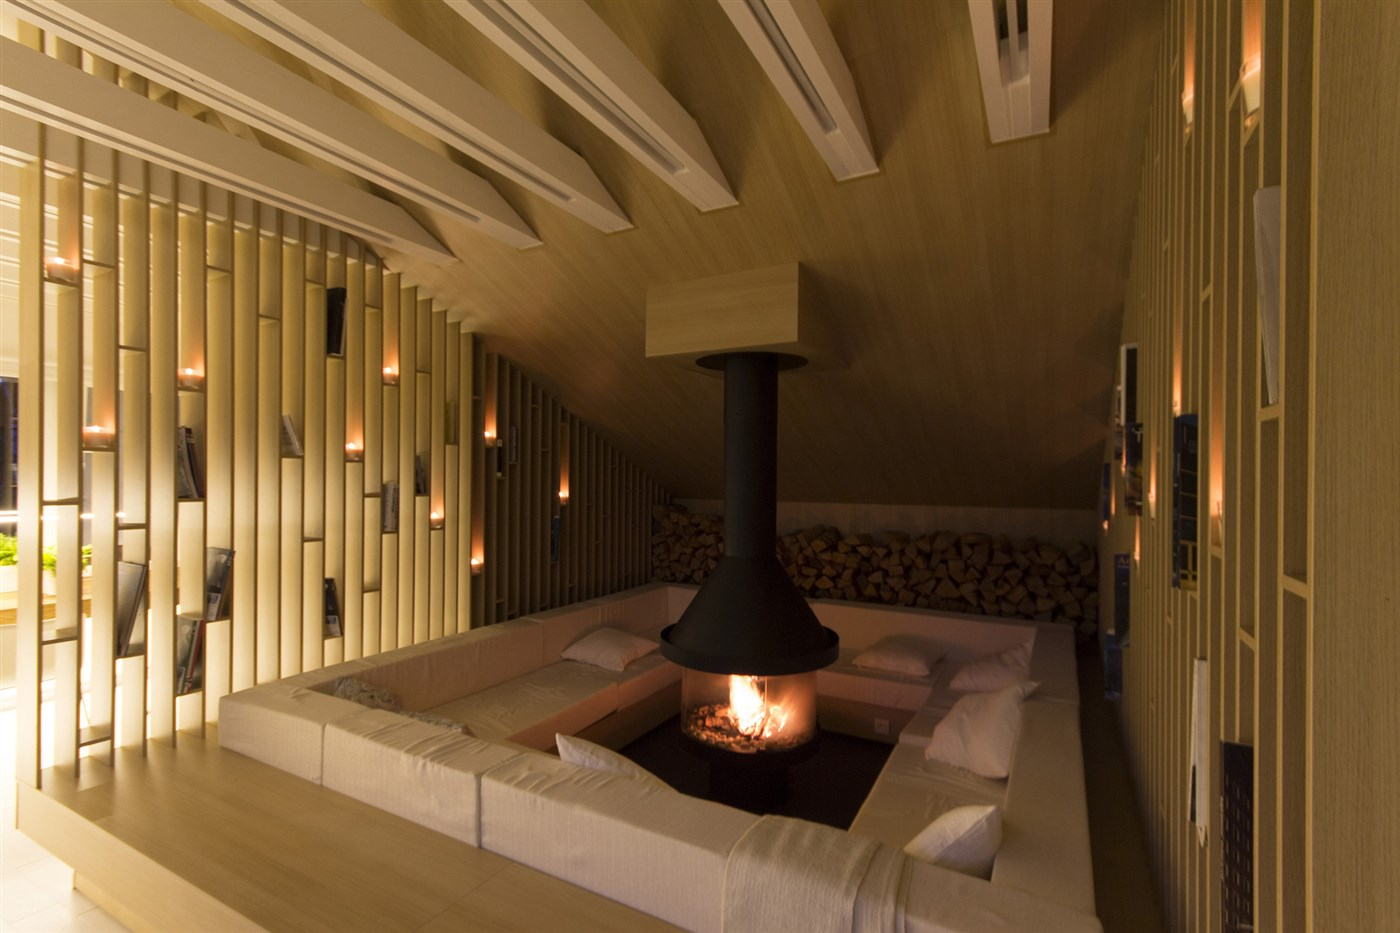 wood screen, wall, fireplacewith bench, relaxe room design ideas